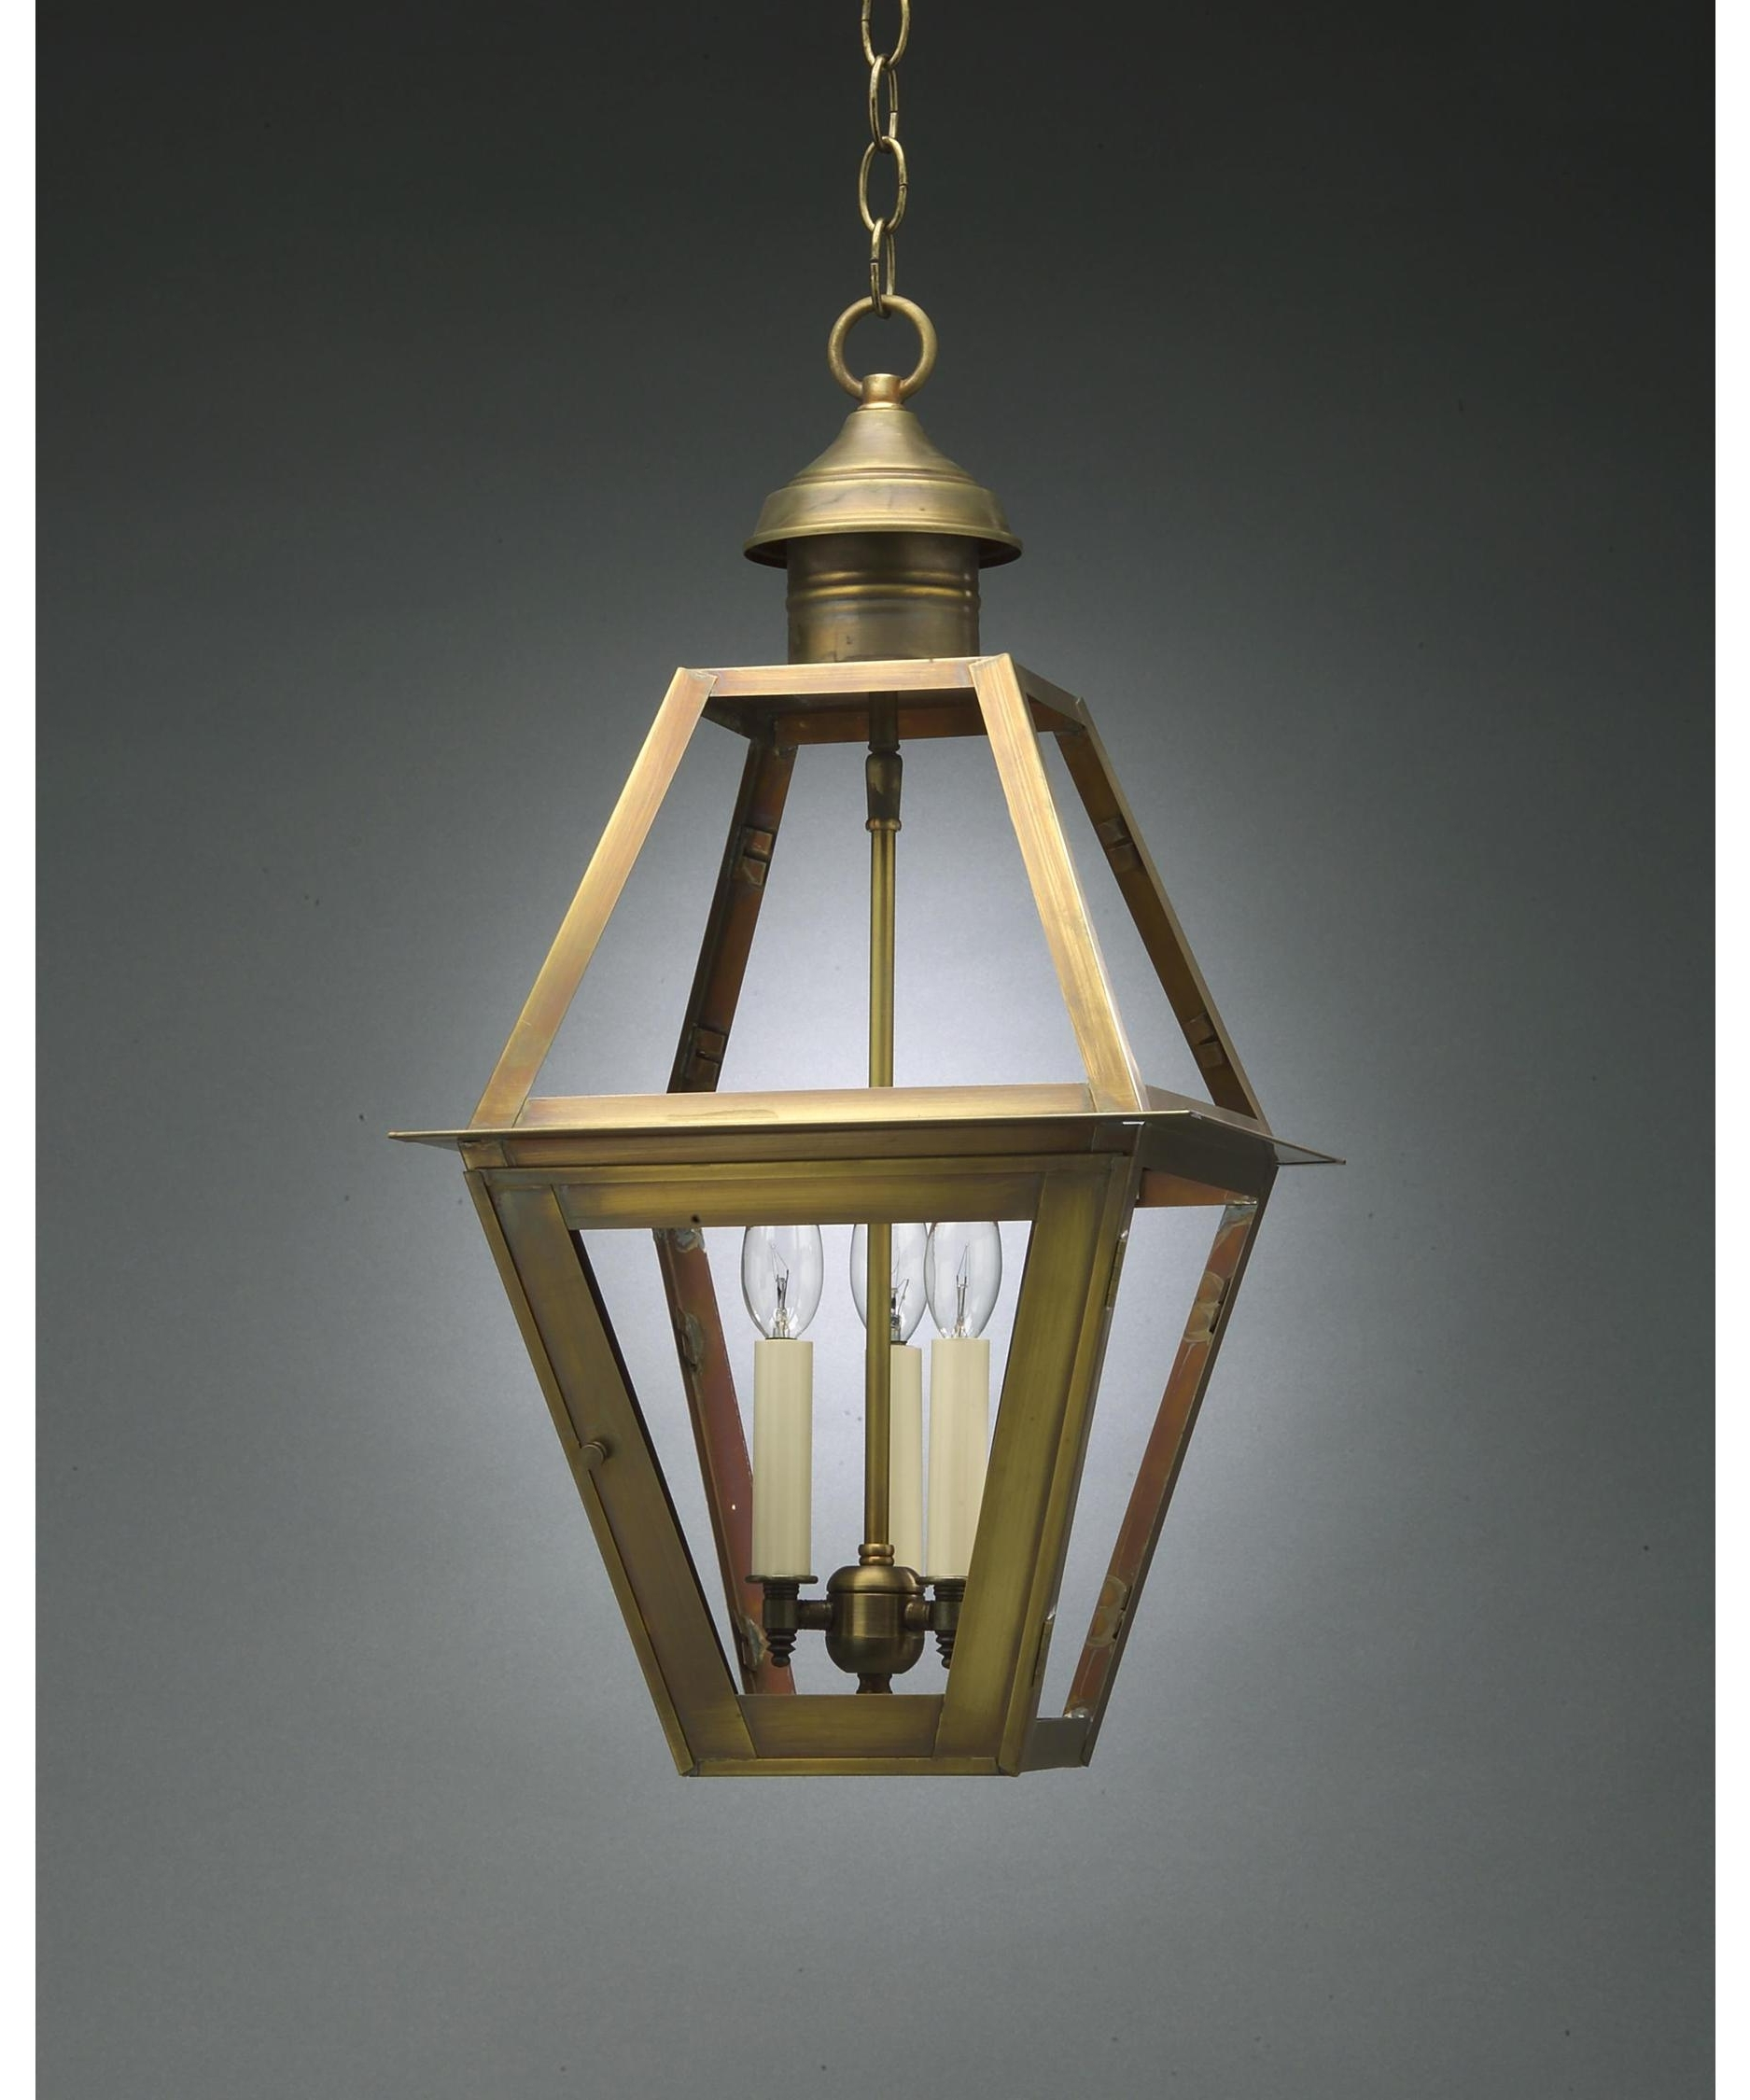 Outdoor Hanging Glass Lanterns In Well Known Northeast Lantern 1012 Lt3 Boston 12 Inch Wide 3 Light Outdoor (View 7 of 20)